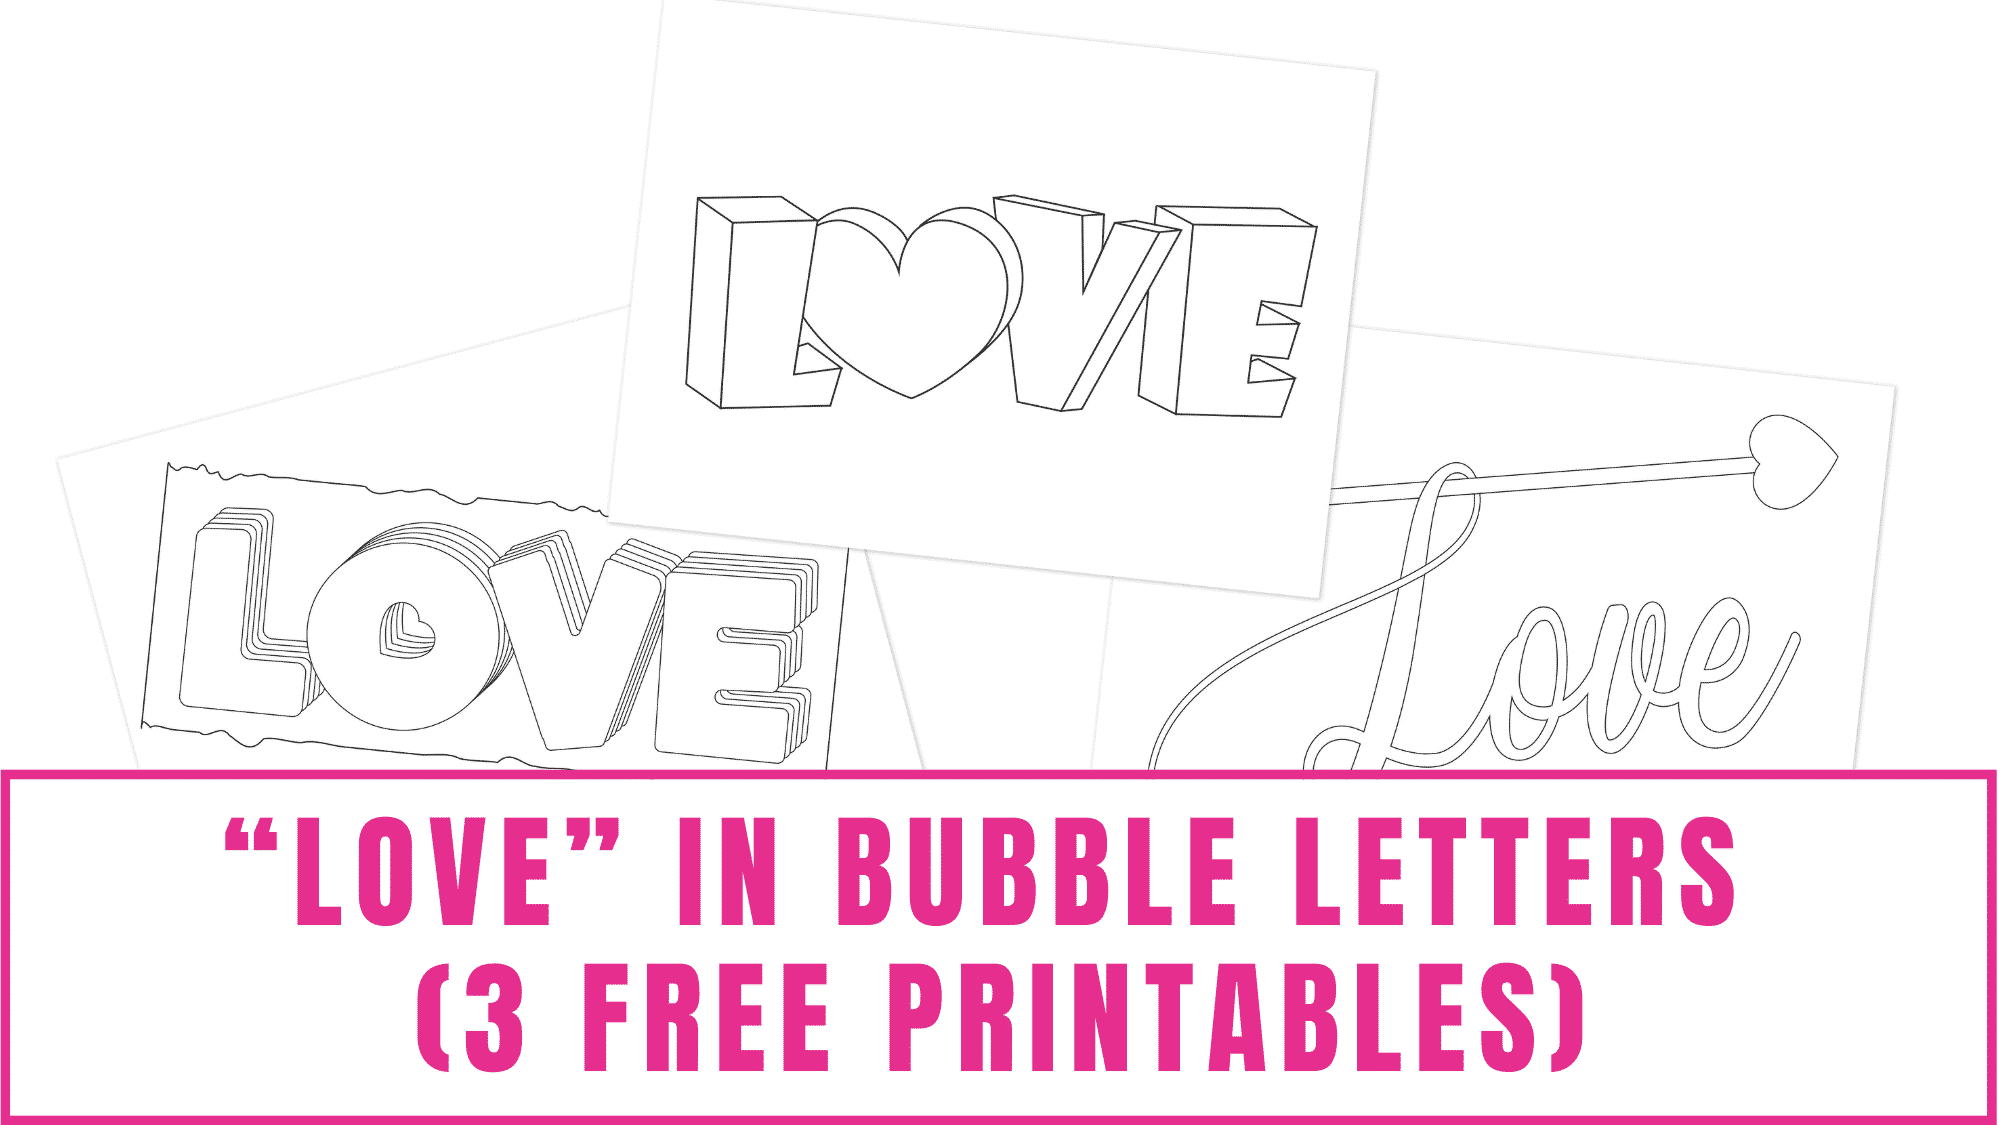 Use these love in bubble letters free printables to make a homemade Valentine's Day card, homemade Father's Day card, or a homemade Mother's Day card.